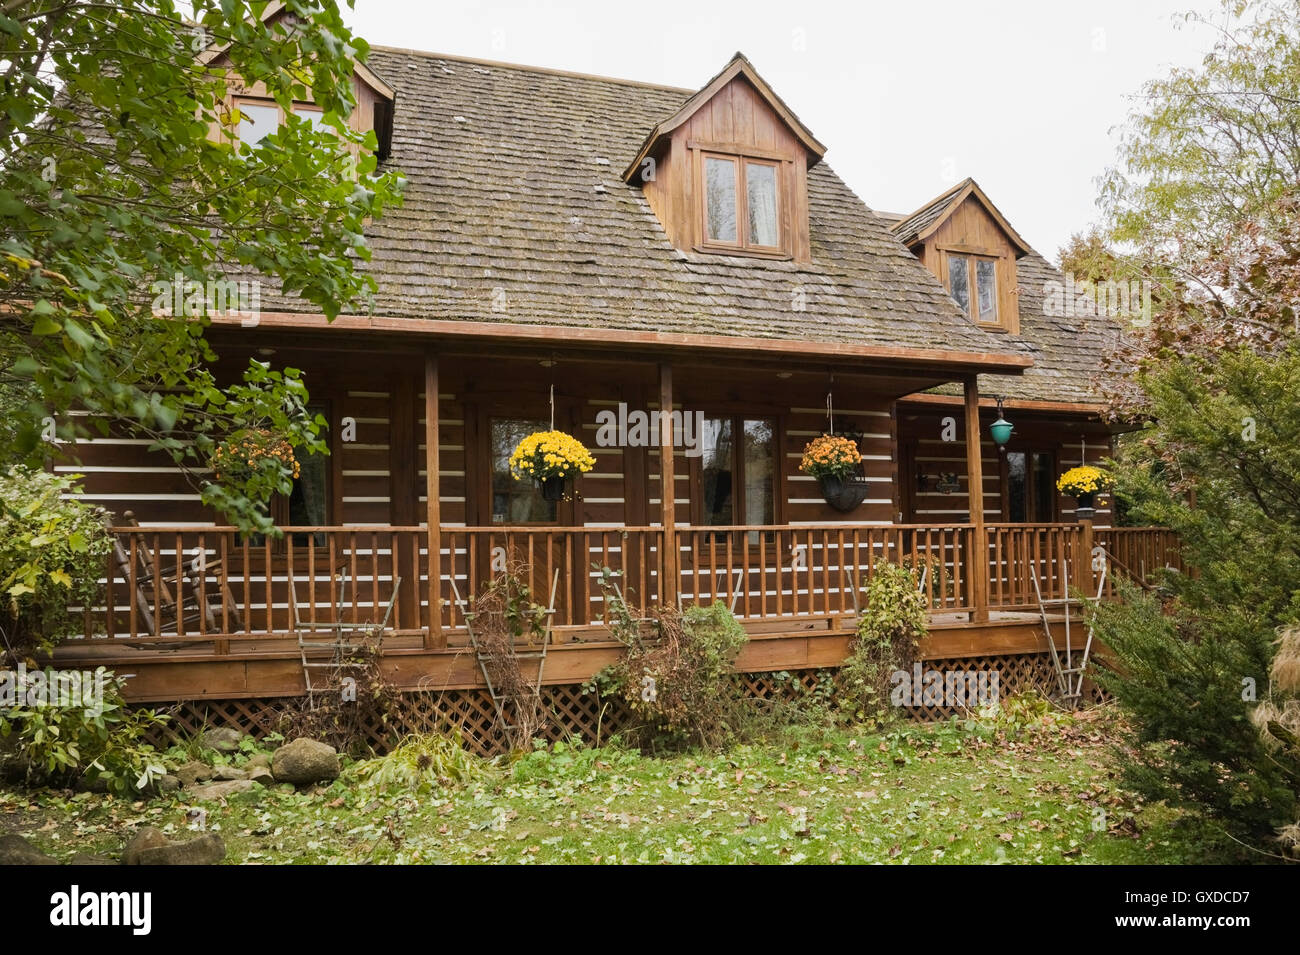 Rustic Canadian Cottage Style Log Home Facade And